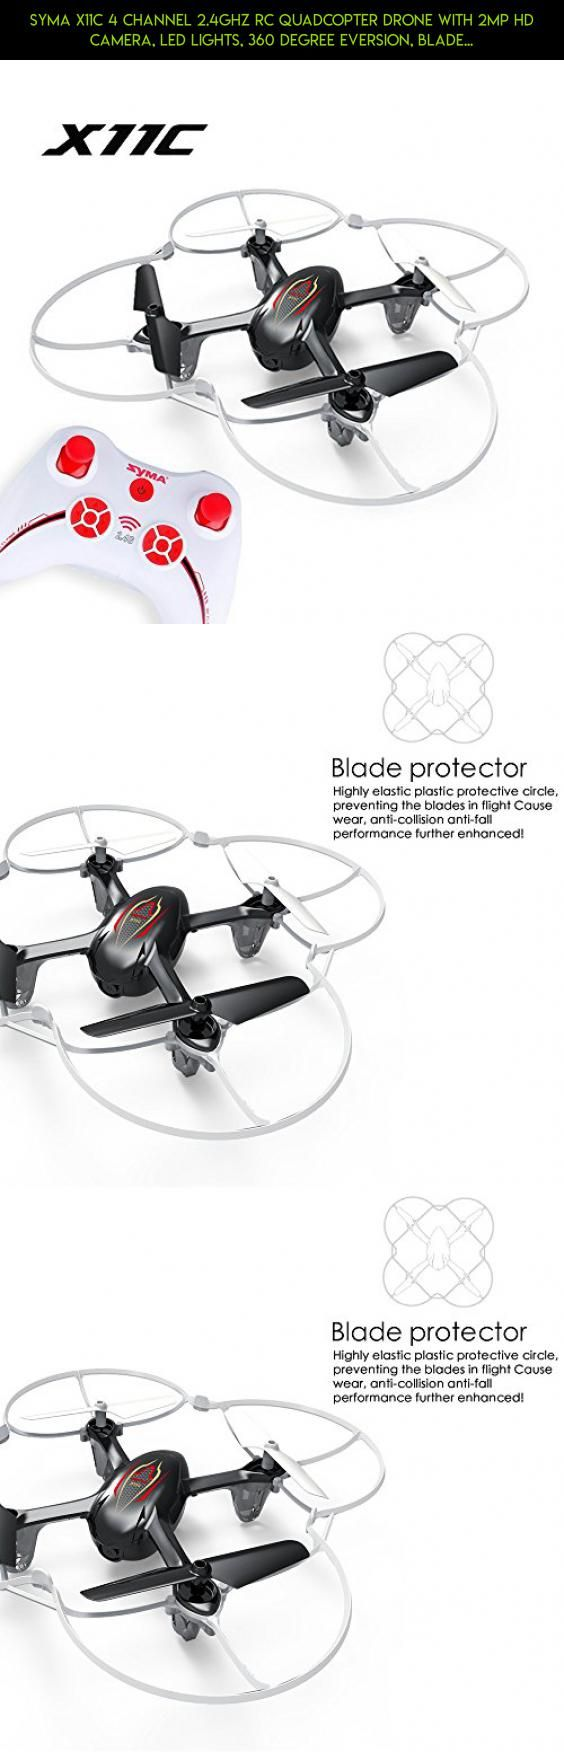 Syma X11C 4 Channel 2.4Ghz RC Quadcopter Drone with 2MP HD Camera, LED Lights, 360 Degree Eversion, Blade Protector (Black) #x5sw #camera #2.4g #gadgets #shopping #tech #plans #fpv #parts #with #kit #wi-fi #quadcopter #syma #camera #products #racing #technology #control #remote #drone